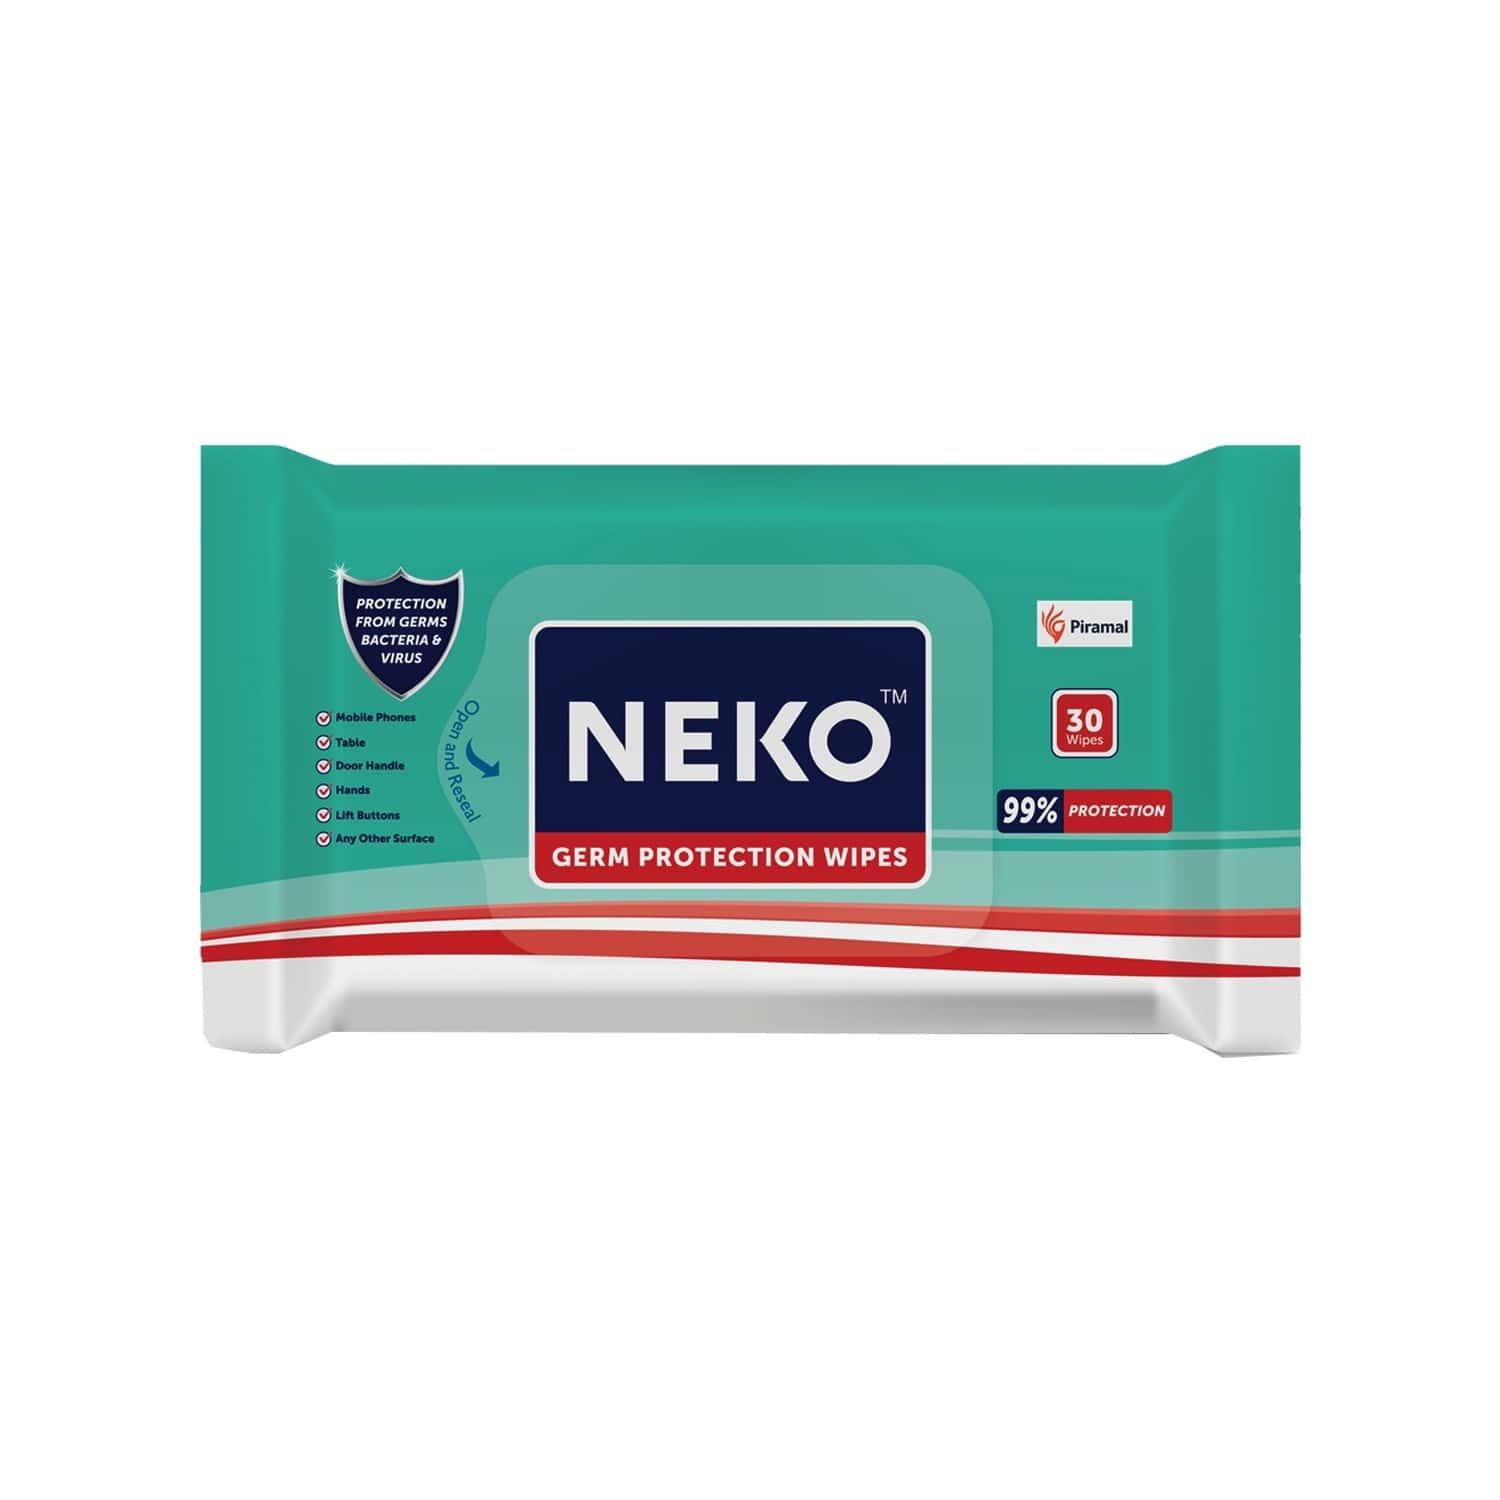 Neko Germ Protection Wipes - Travel Pack - 30 Wipes